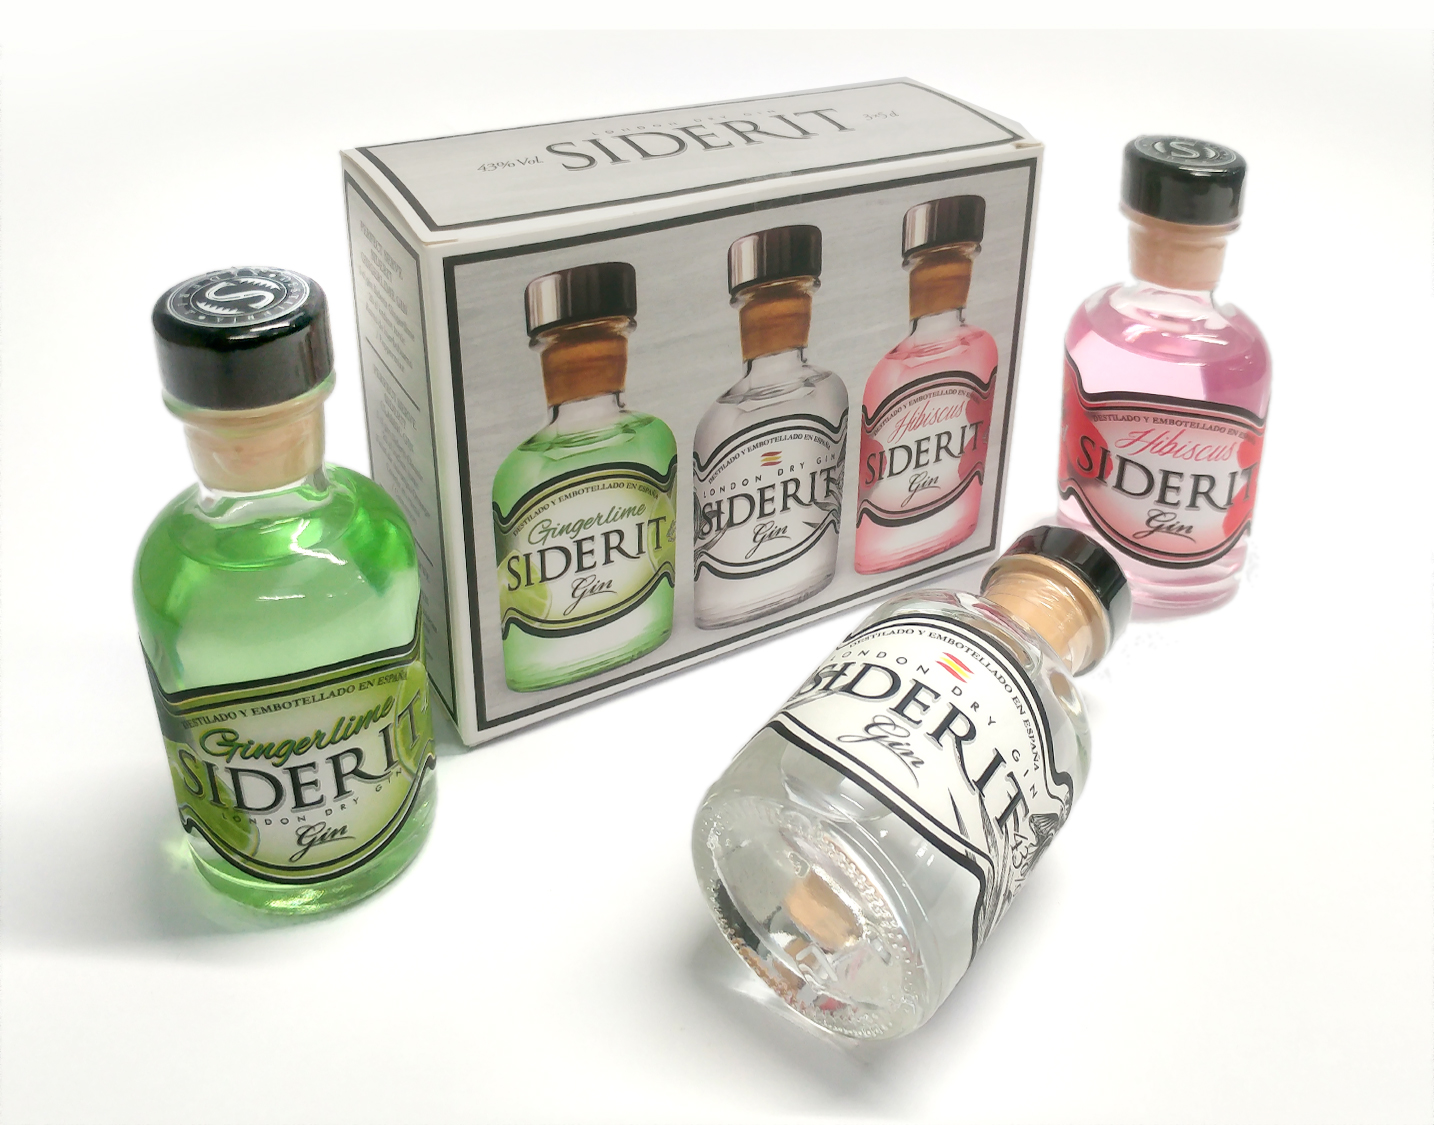 Estuche de mini botellas de Gin Siderit, 43% Alc., 3*50ml